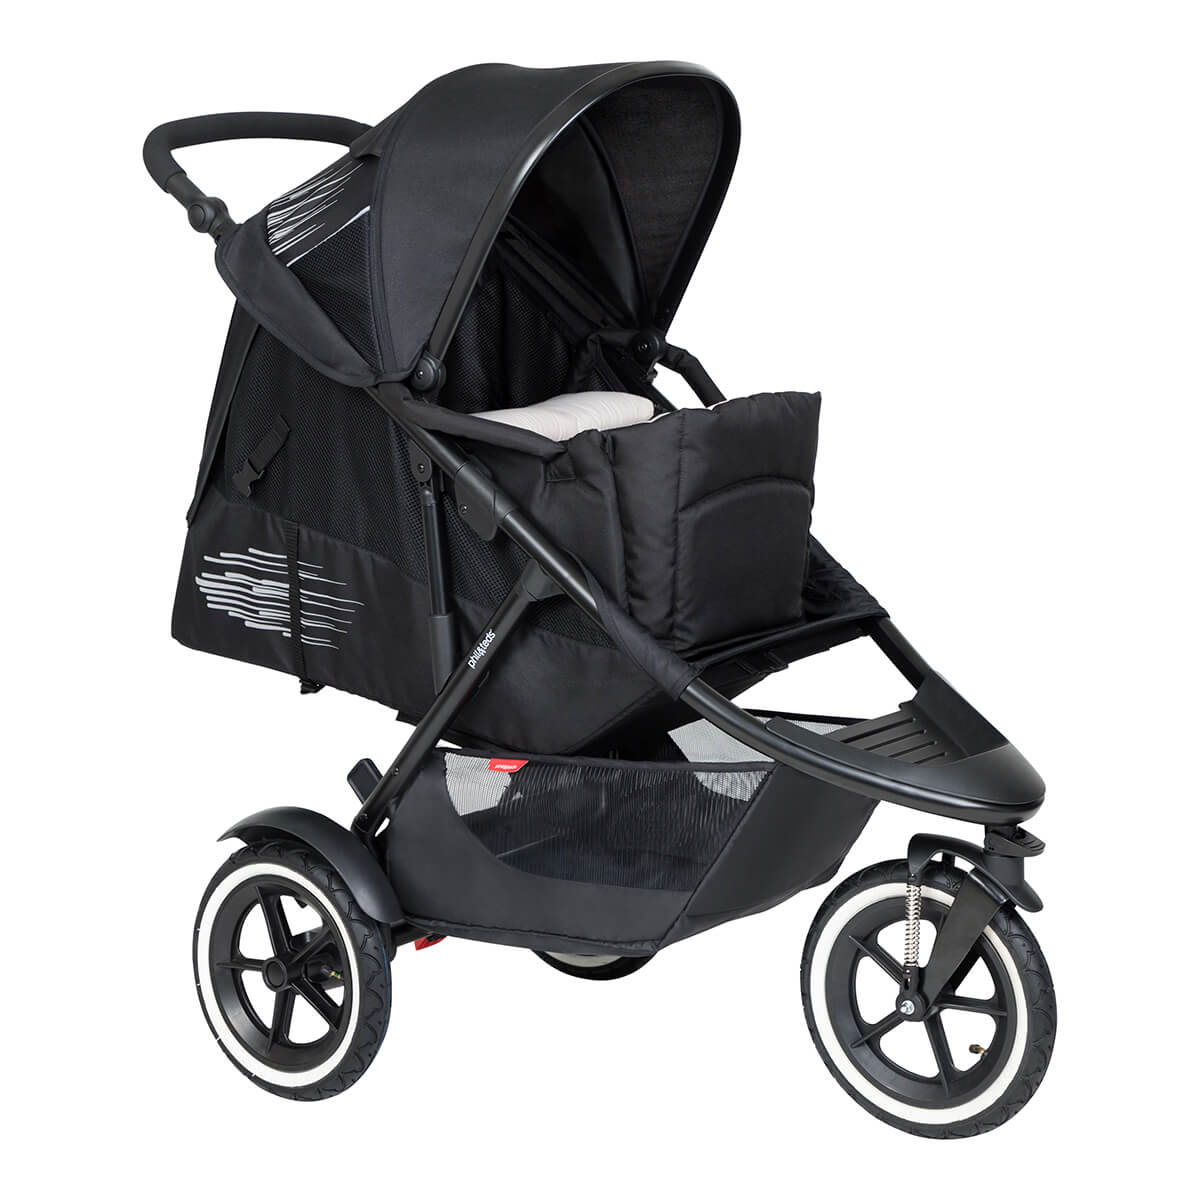 https://cdn.accentuate.io/4509898735693/19466203660482/philteds-sport-buggy-with-cocoon-full-recline-v1626485359109.jpg?1200x1200